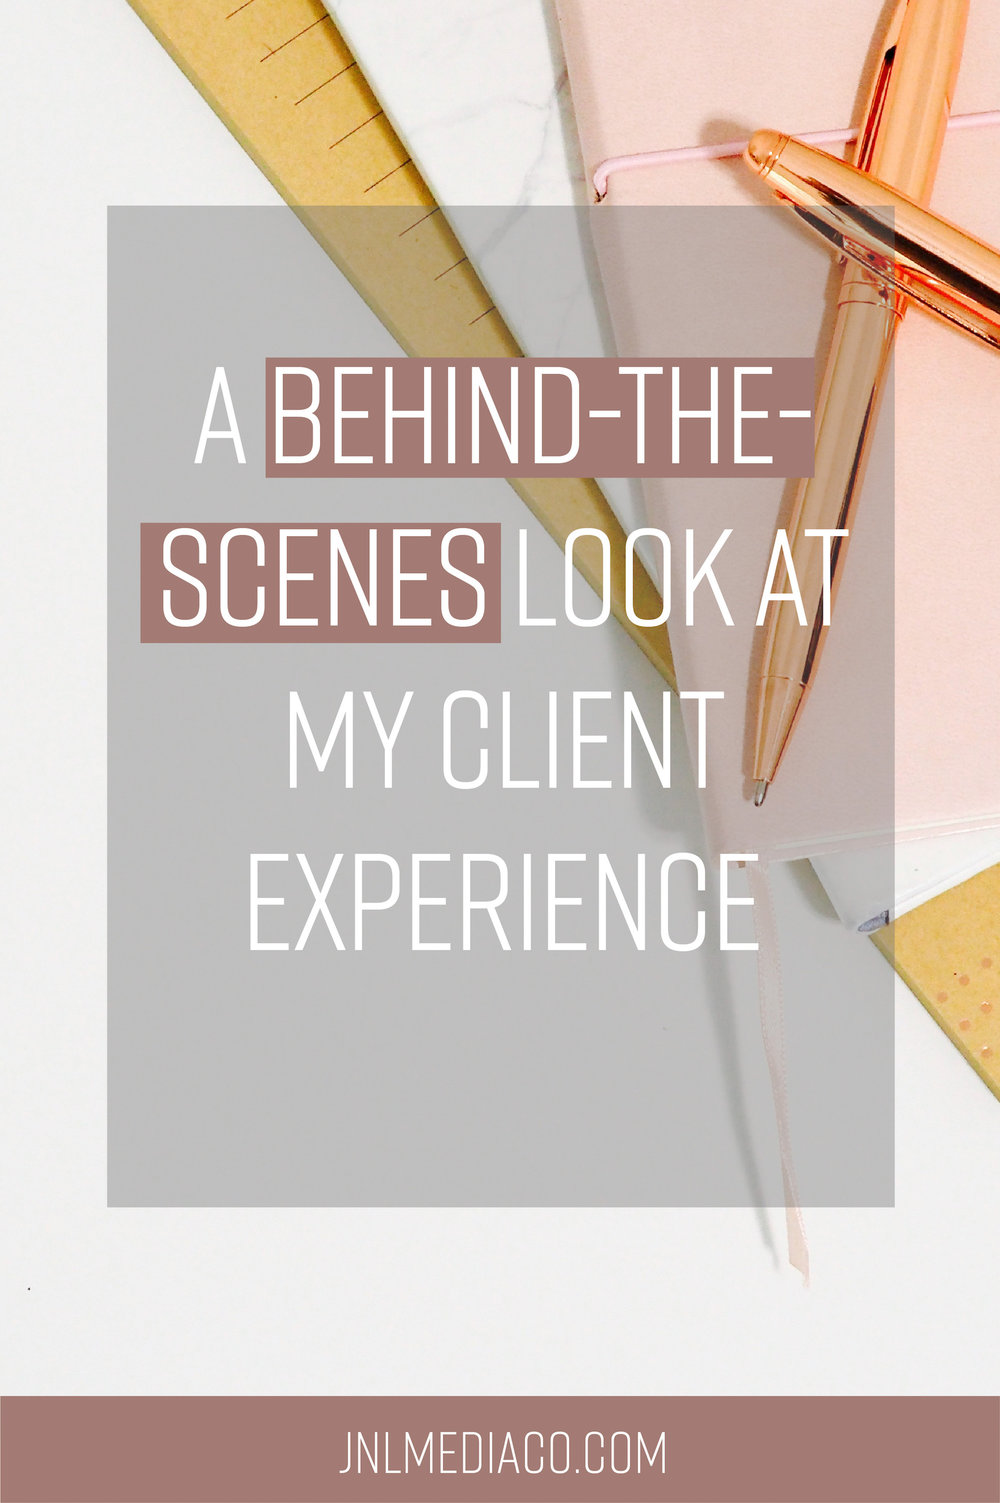 If you are a serviced based business then you know the power behind a good client experience. At the end of the day my clients invest in yes their branding elements and a killer website but they are also expecting a great experience. I can deliver a good end result but if the process wasn't straightforward, clear, enjoyable, and organized then my client will probably be left wanting more.